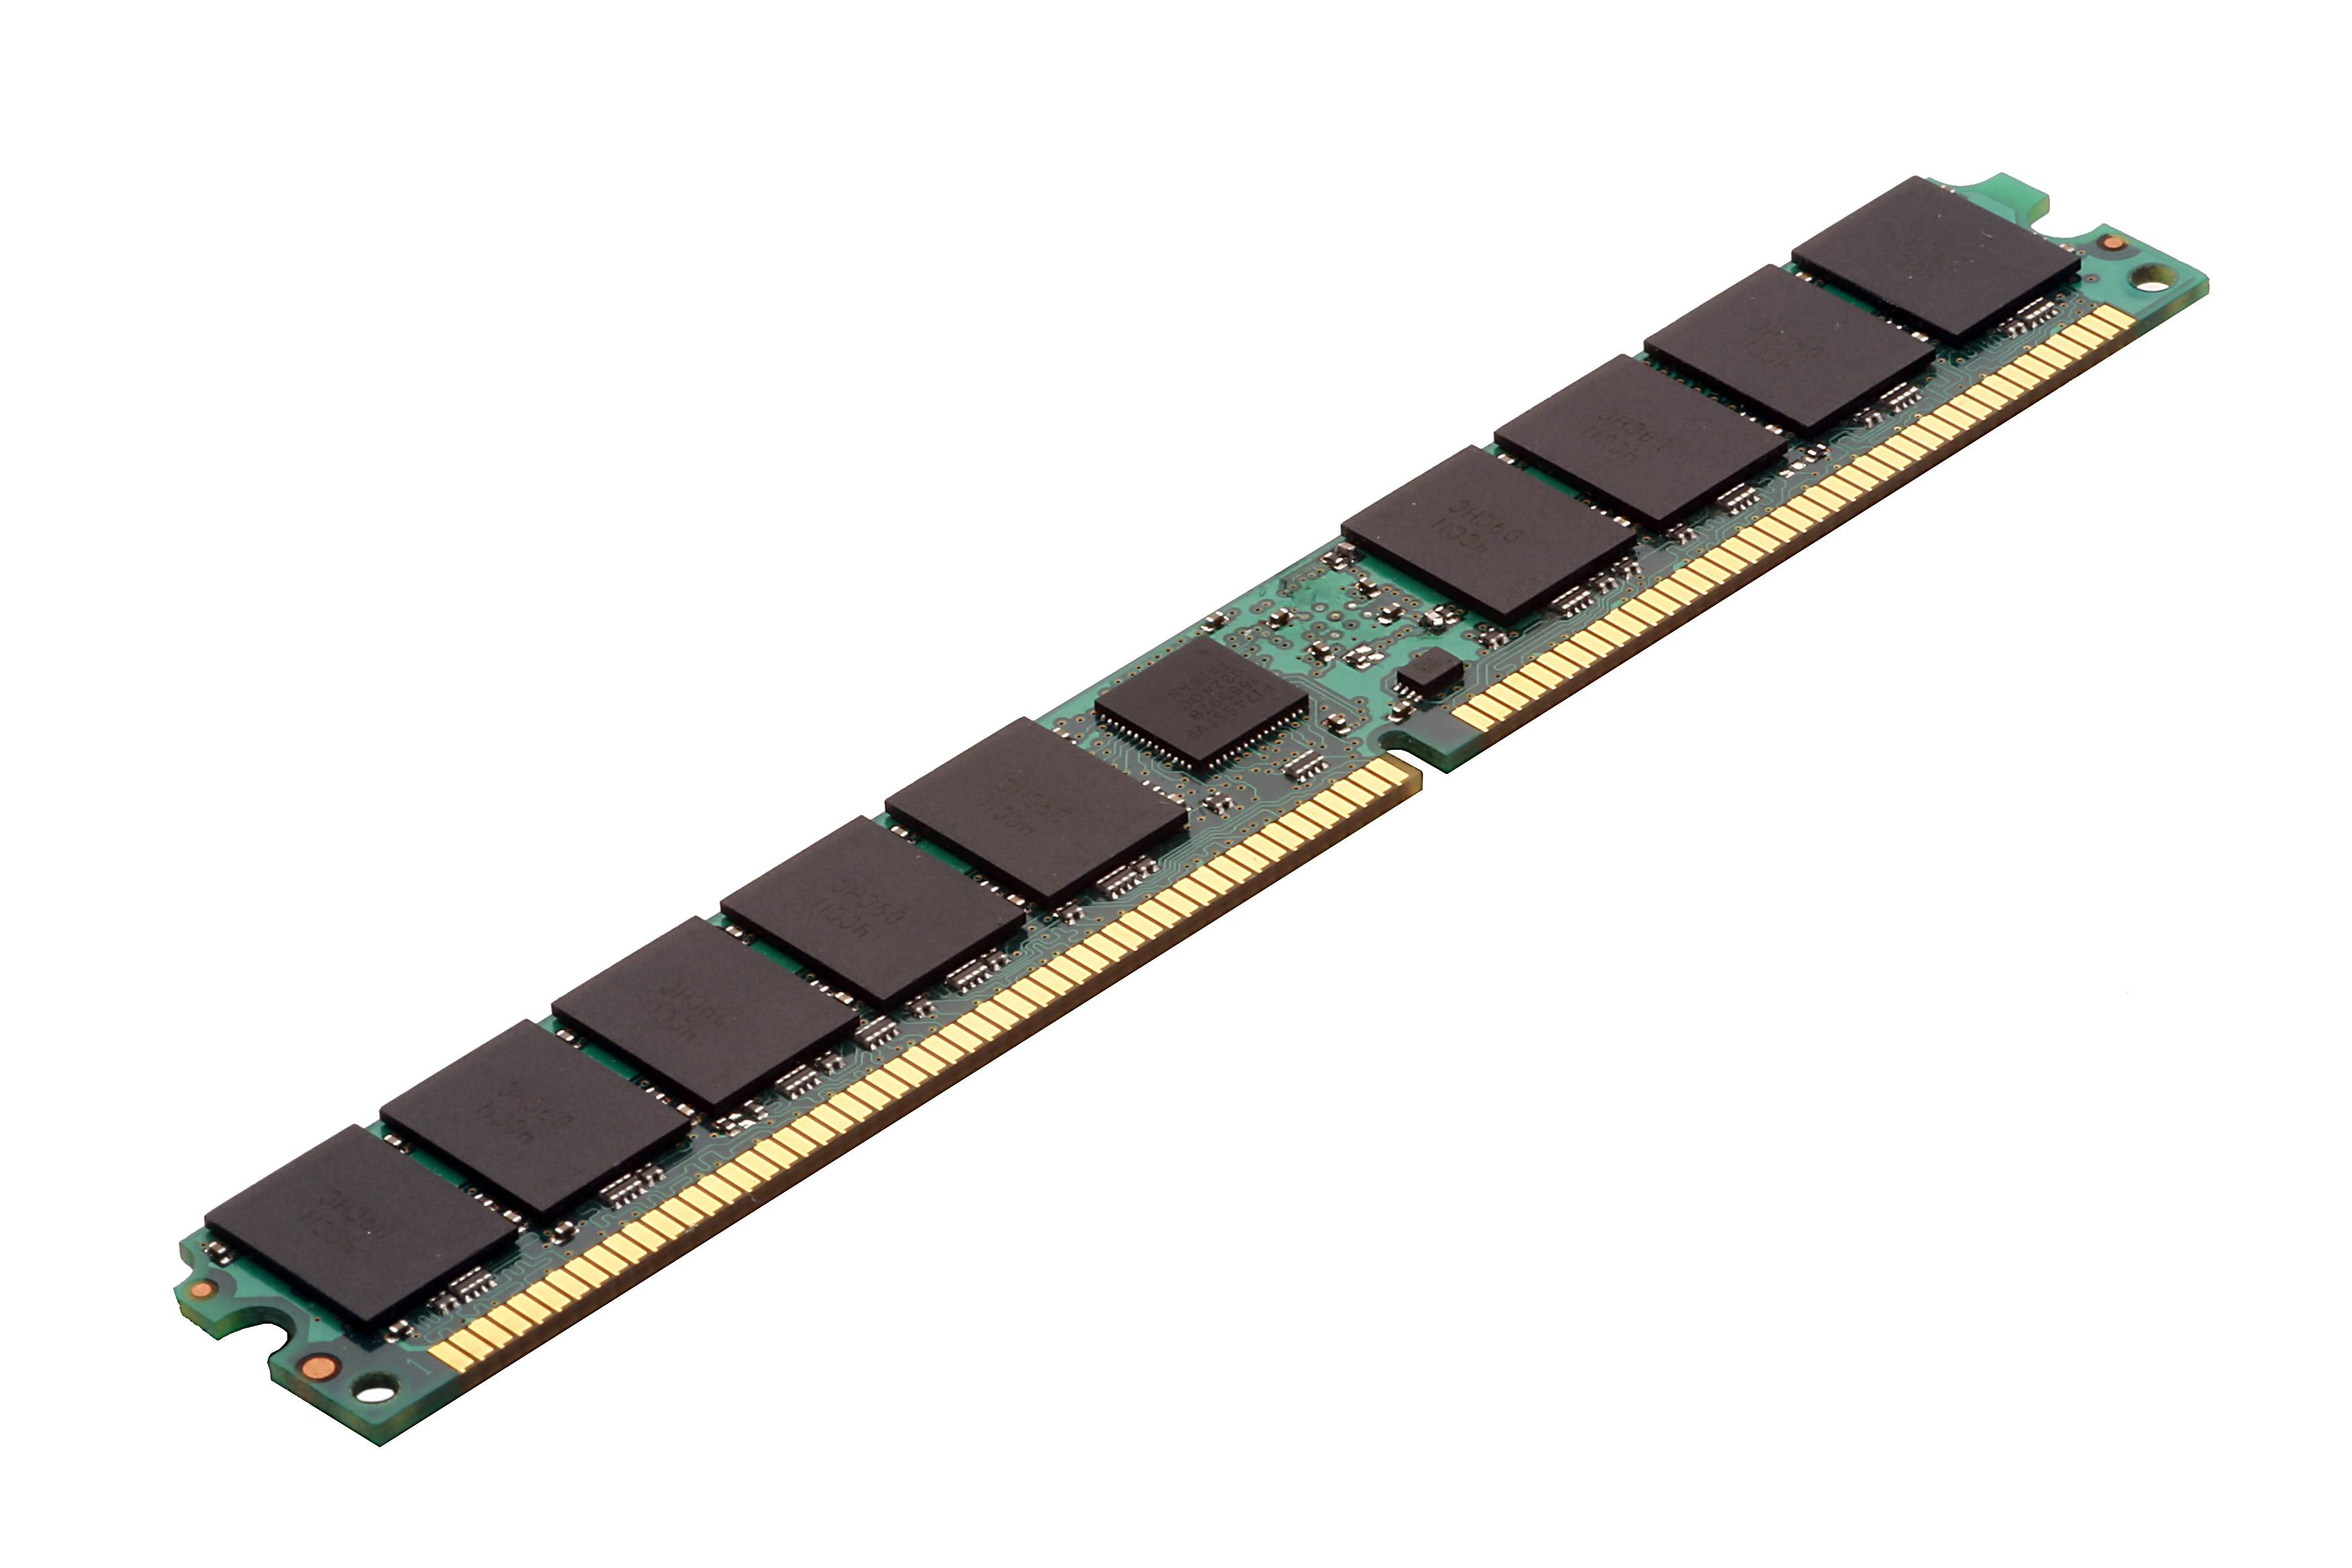 DRAM Module categorized as VLP RDIMM with quad rank